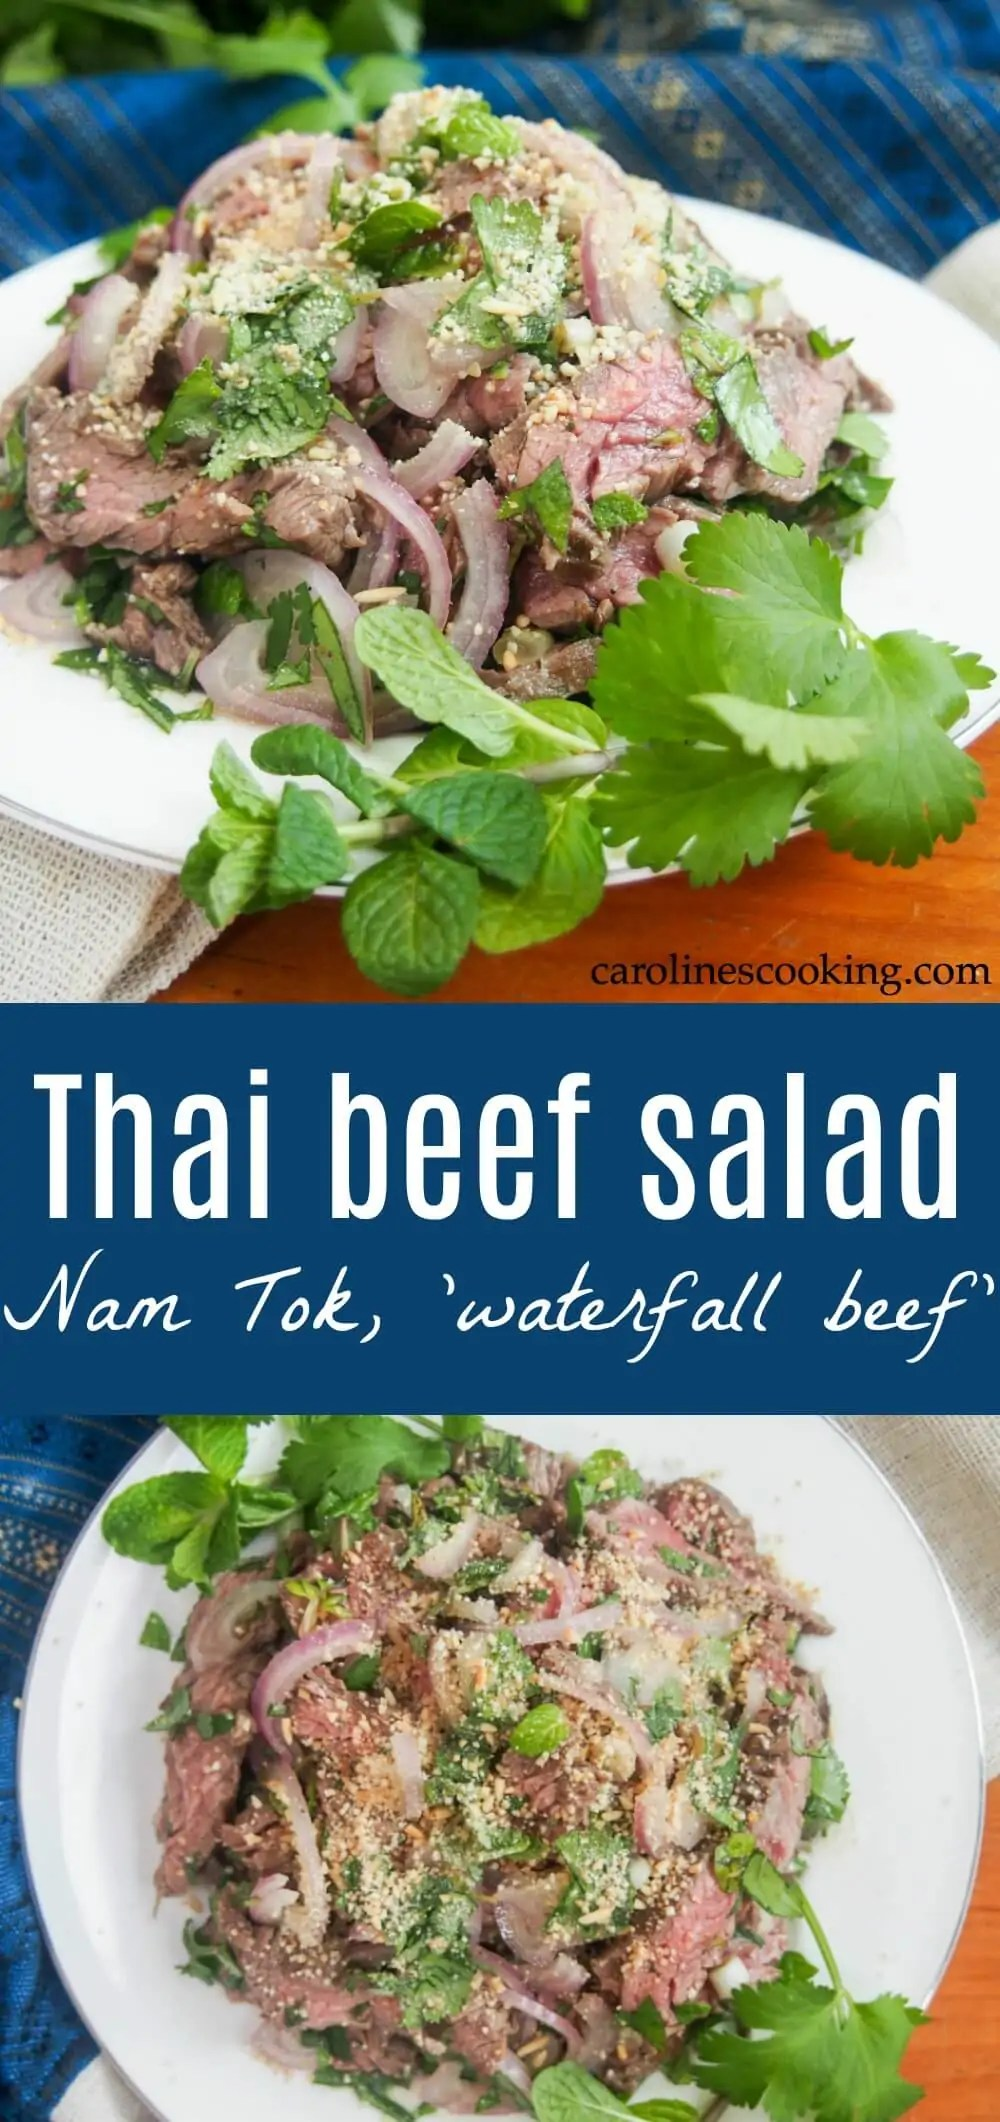 Thai beef salad (Nam Tok, 'waterfall beef') - Nam tok, a traditional Thai beef salad, is primarily meat and herbs rather than 'salad' ingredients, but it's full of delicious fresh flavors you'll love. Easy to make, it's fresh and perfect for lunch or as an appetizer. #Thaifood #Thaibeefsalad #namtok #asianrecipe #glutenfree